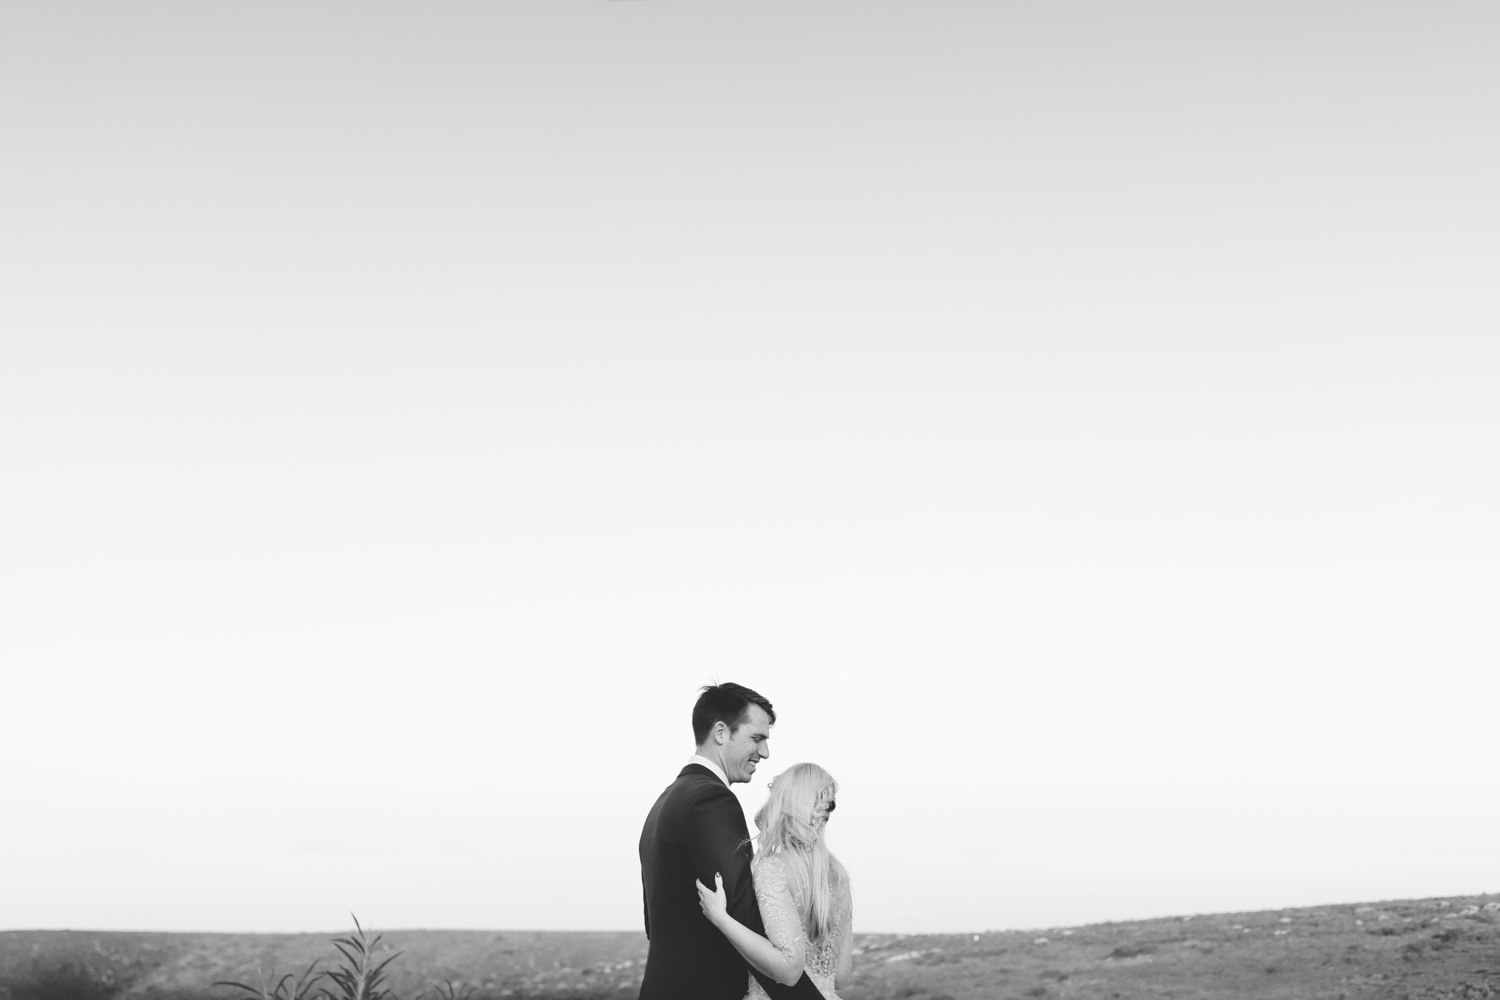 cathryn_warwick_wearecharlieray_hopewell_conservation_eastern_cape_wedding_0107.jpg